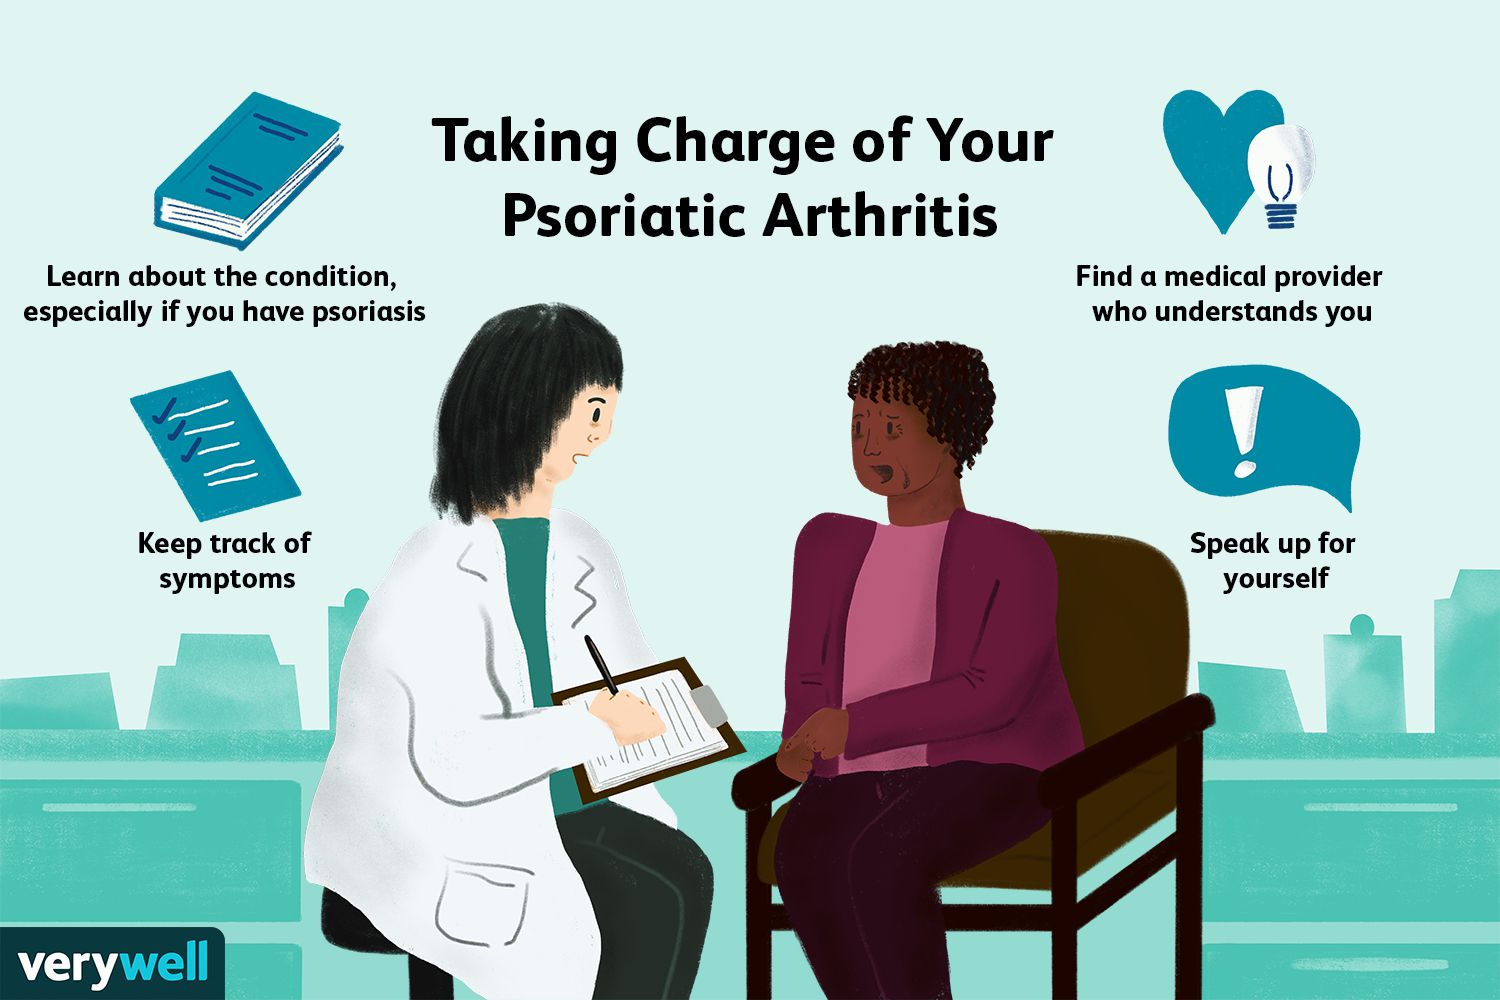 Taking Charge of Your Psoriatic Arthritis